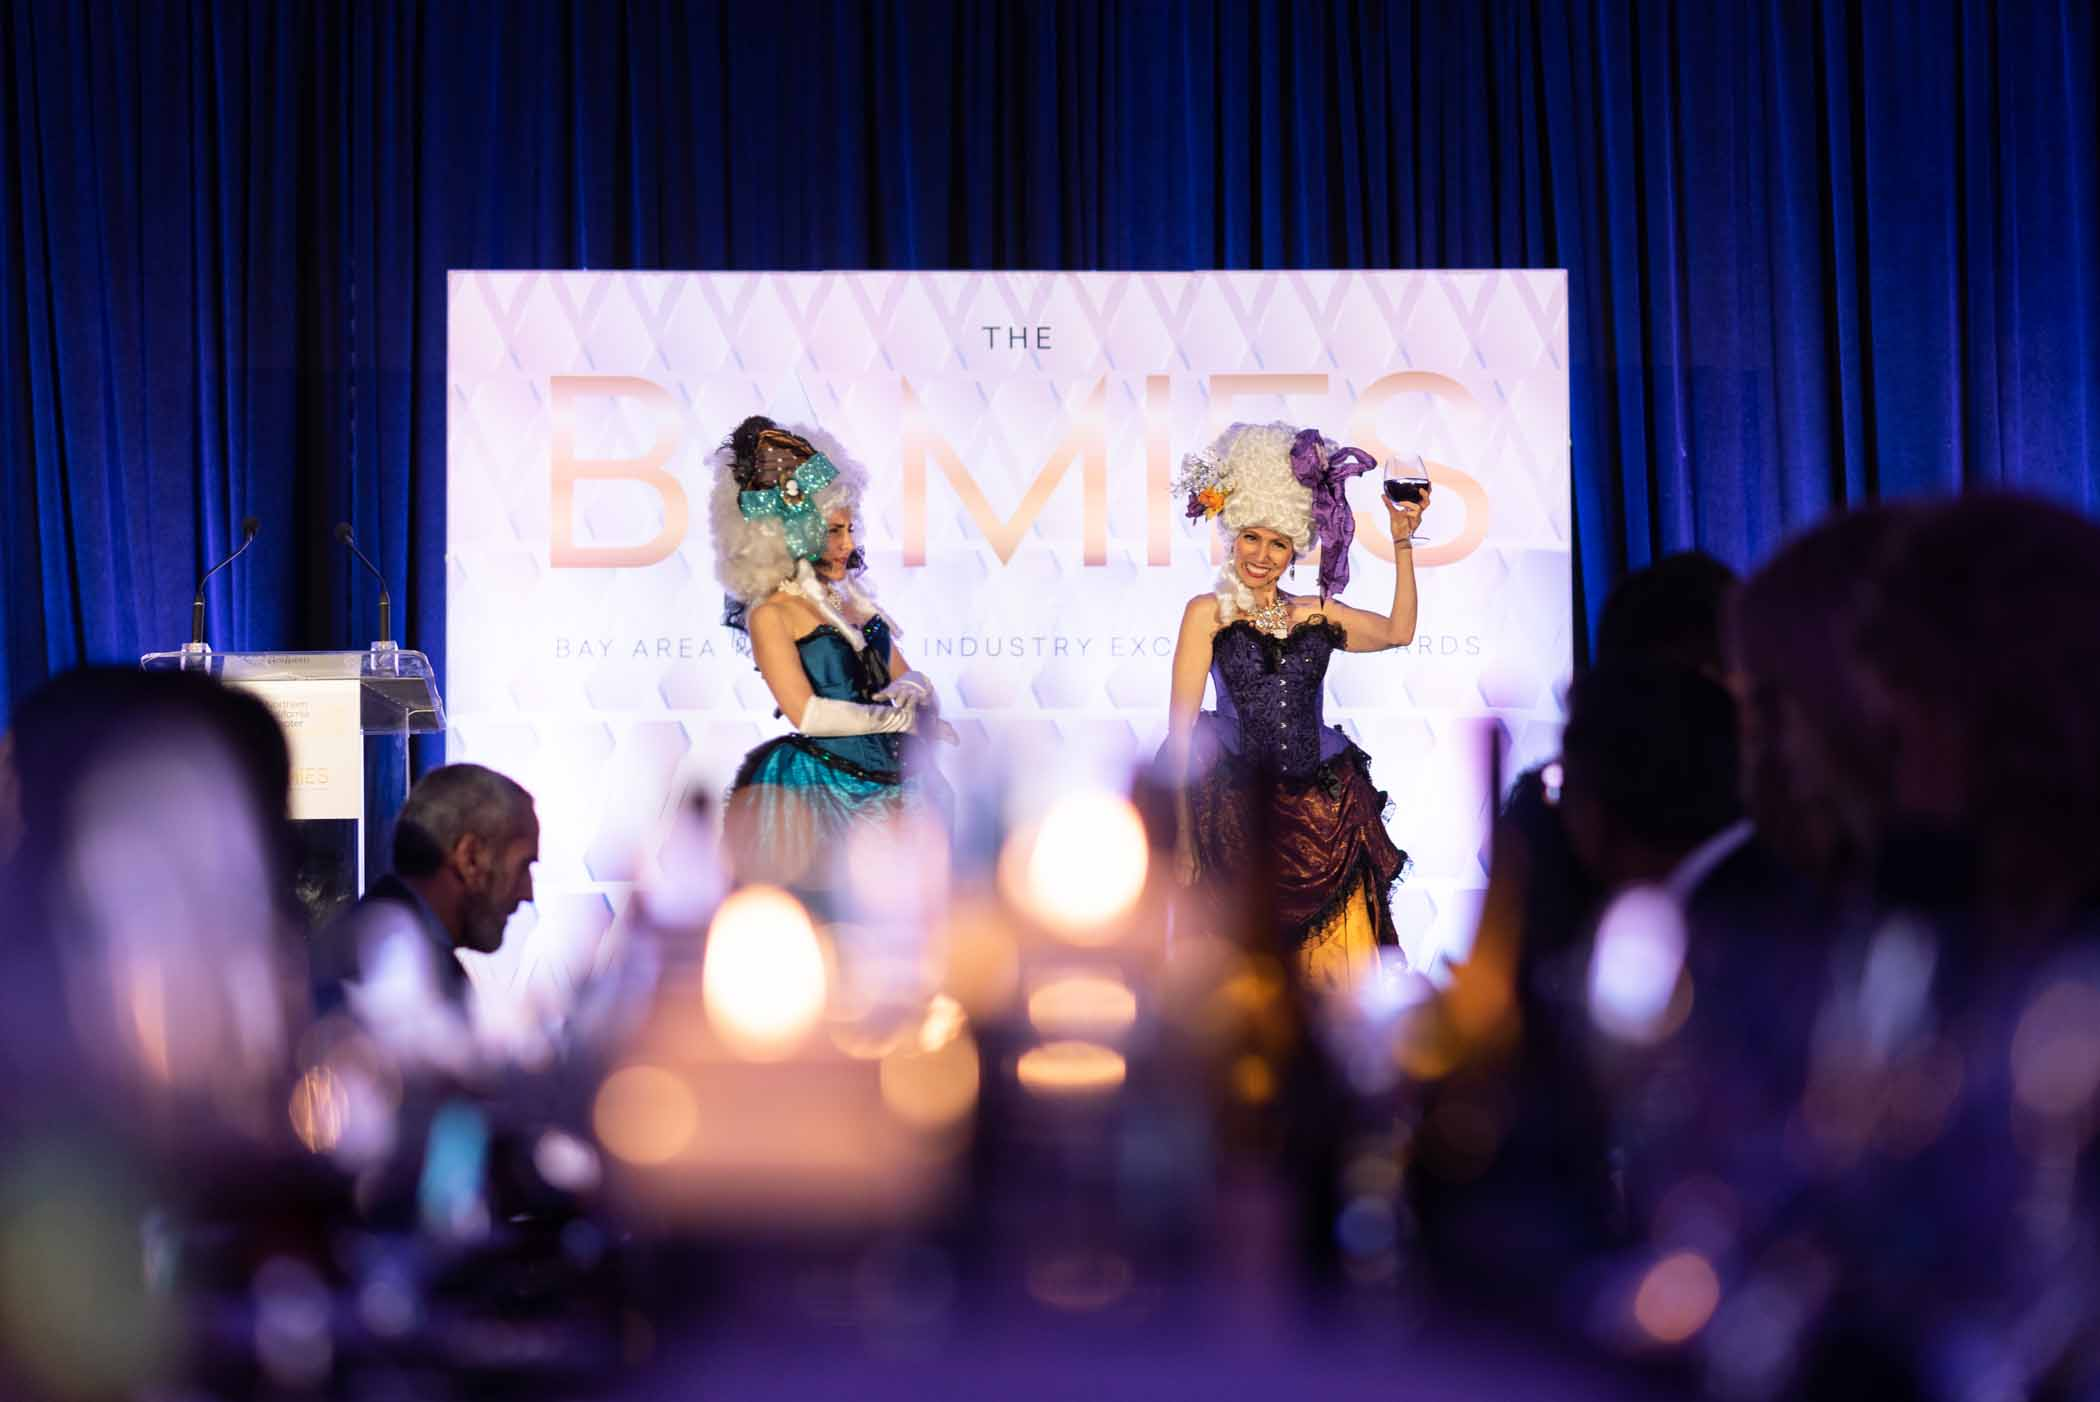 018_bamies_sanfrancisco_event_photographer.jpg